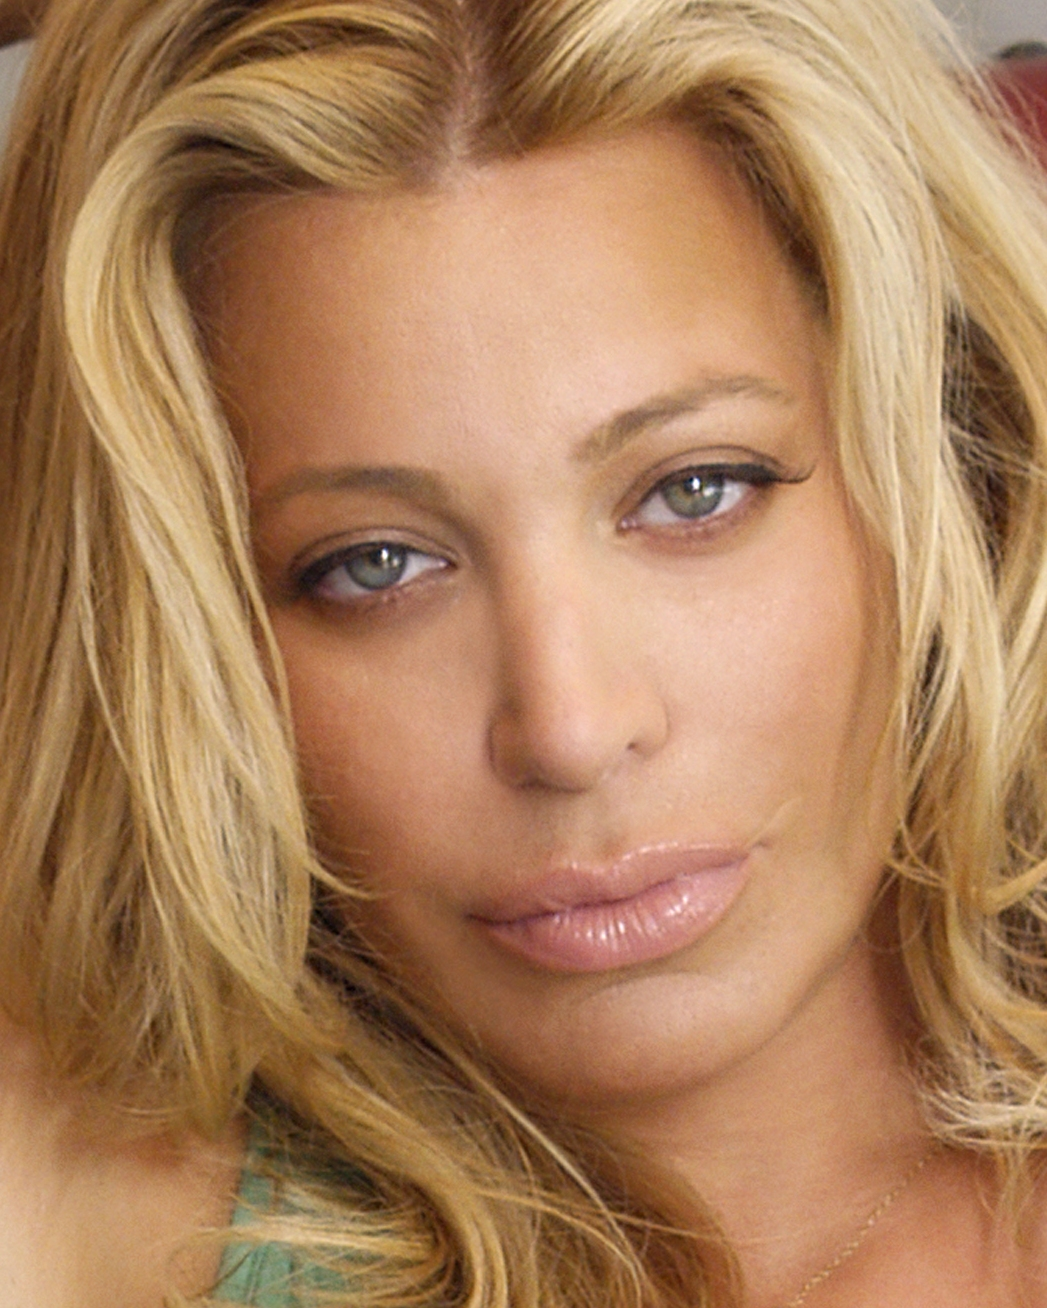 Taylor Dayne naked (85 photos), Pussy, Cleavage, Selfie, cleavage 2017